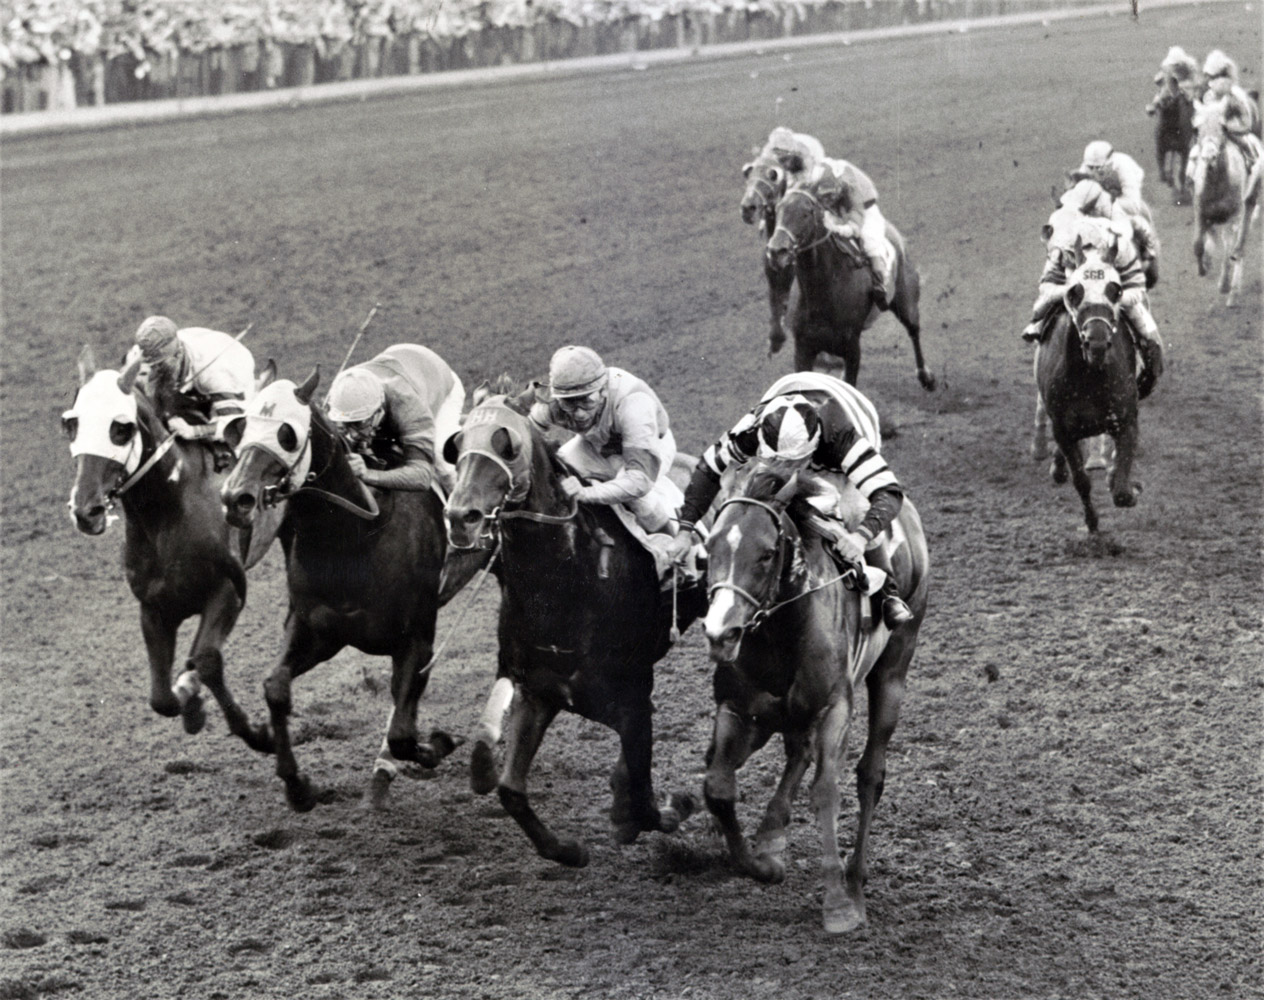 Swoon's Son with Dave Erb up (on the right) winning the 1957 Citation Handicap at Washington Park (Keeneland Library Thoroughbred Times Collection)